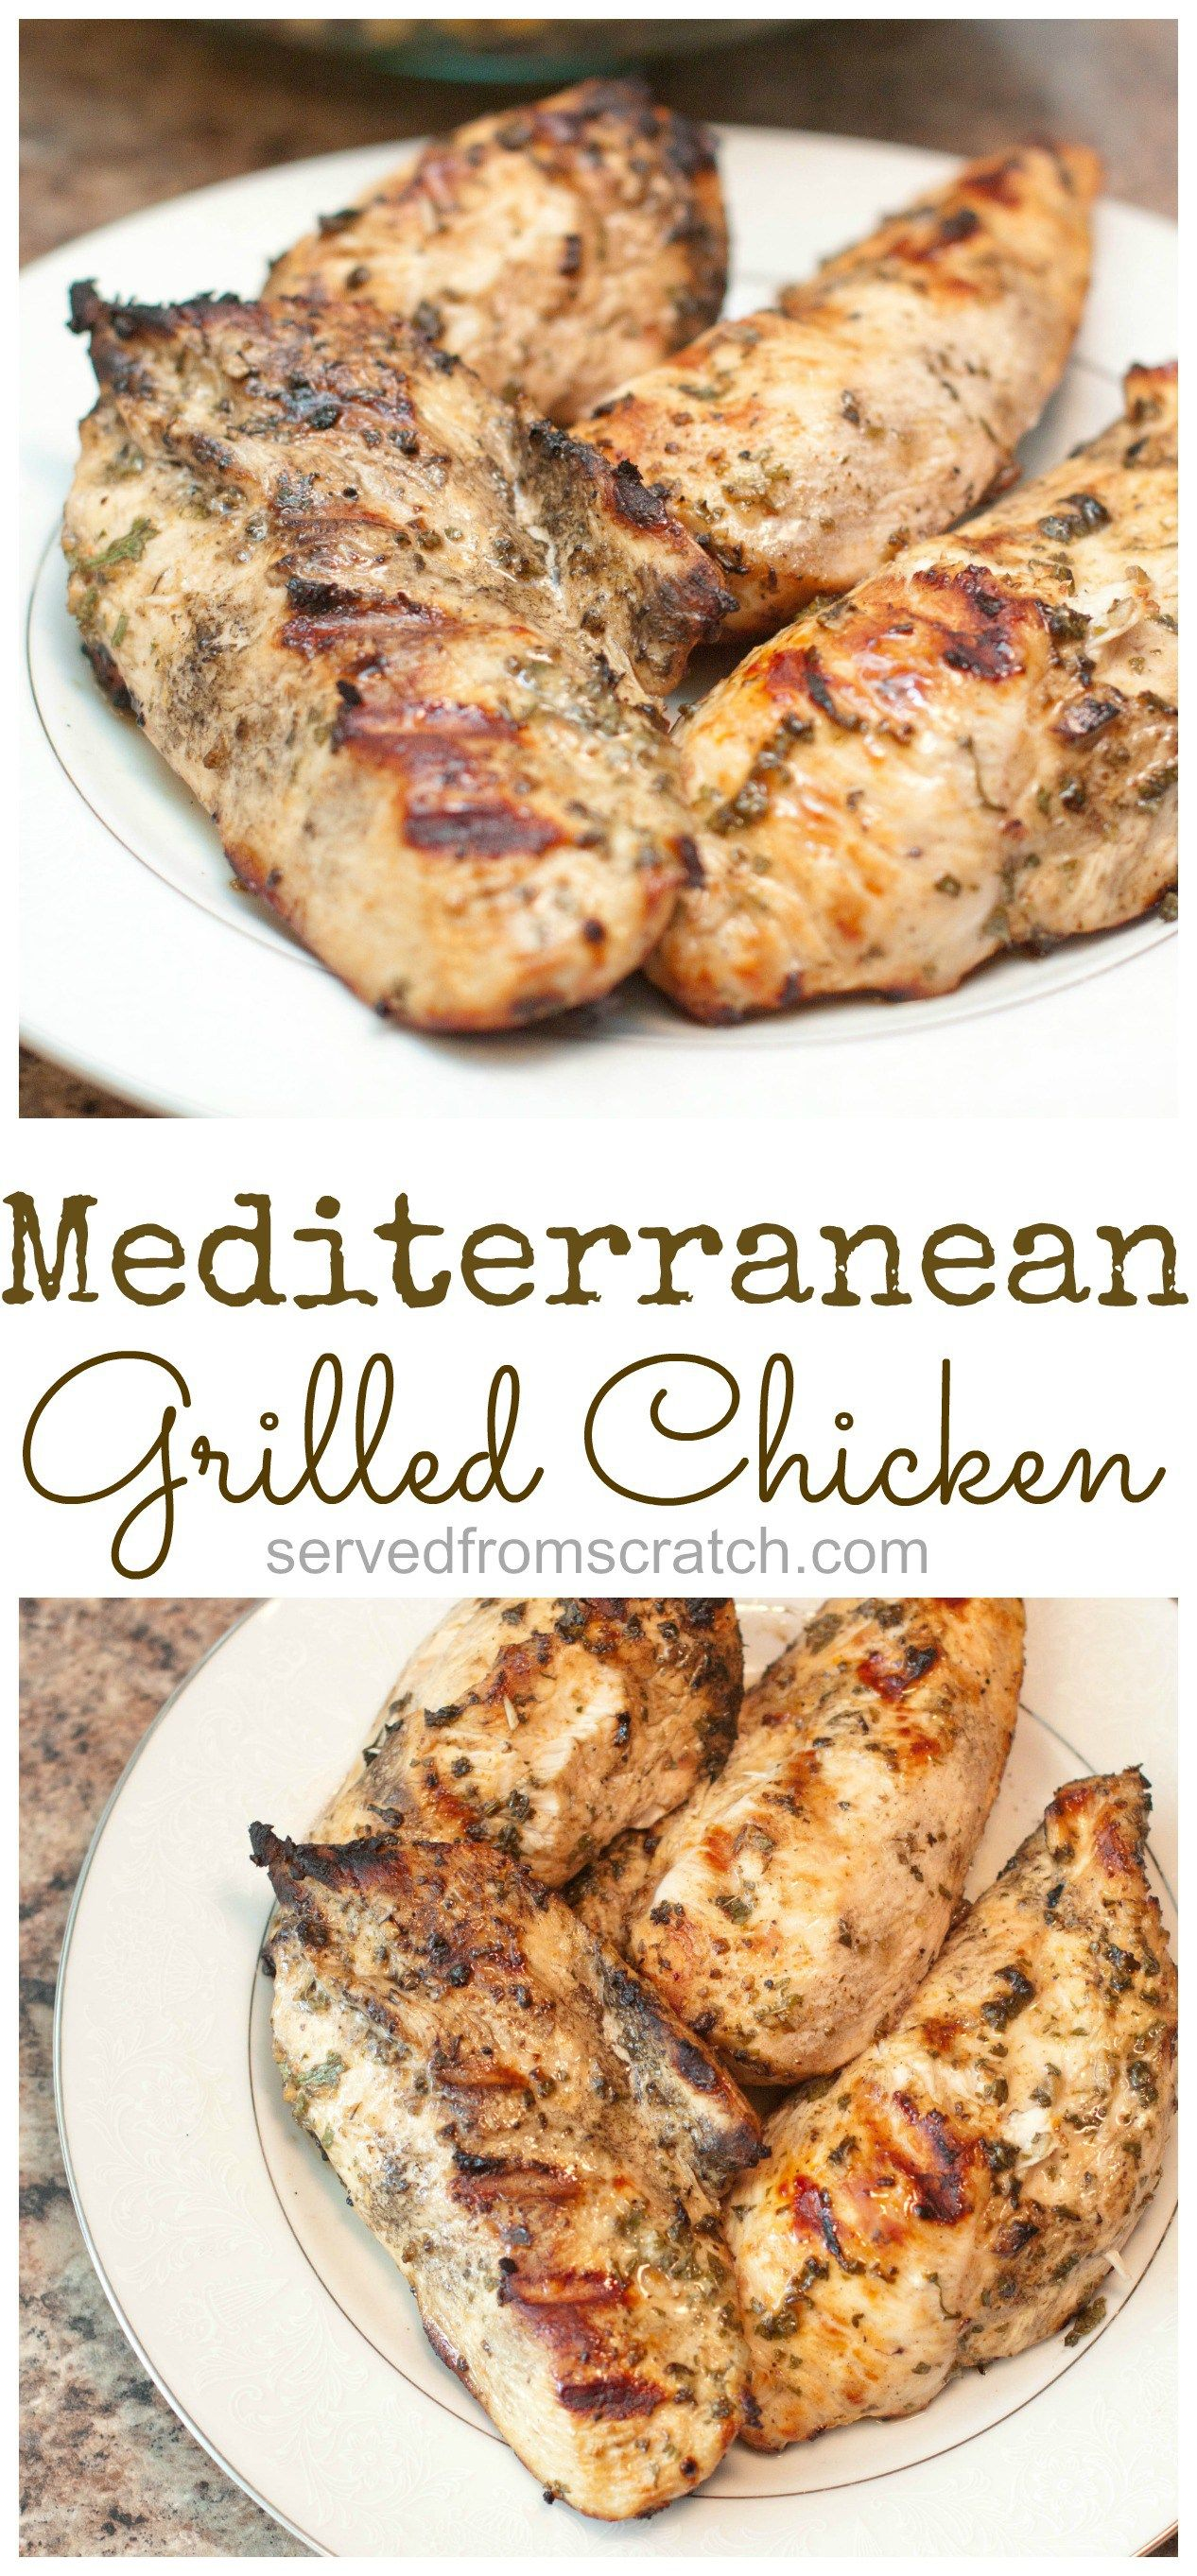 Mediterranean Grilled Chicken Breasts Recipe Food Recipes